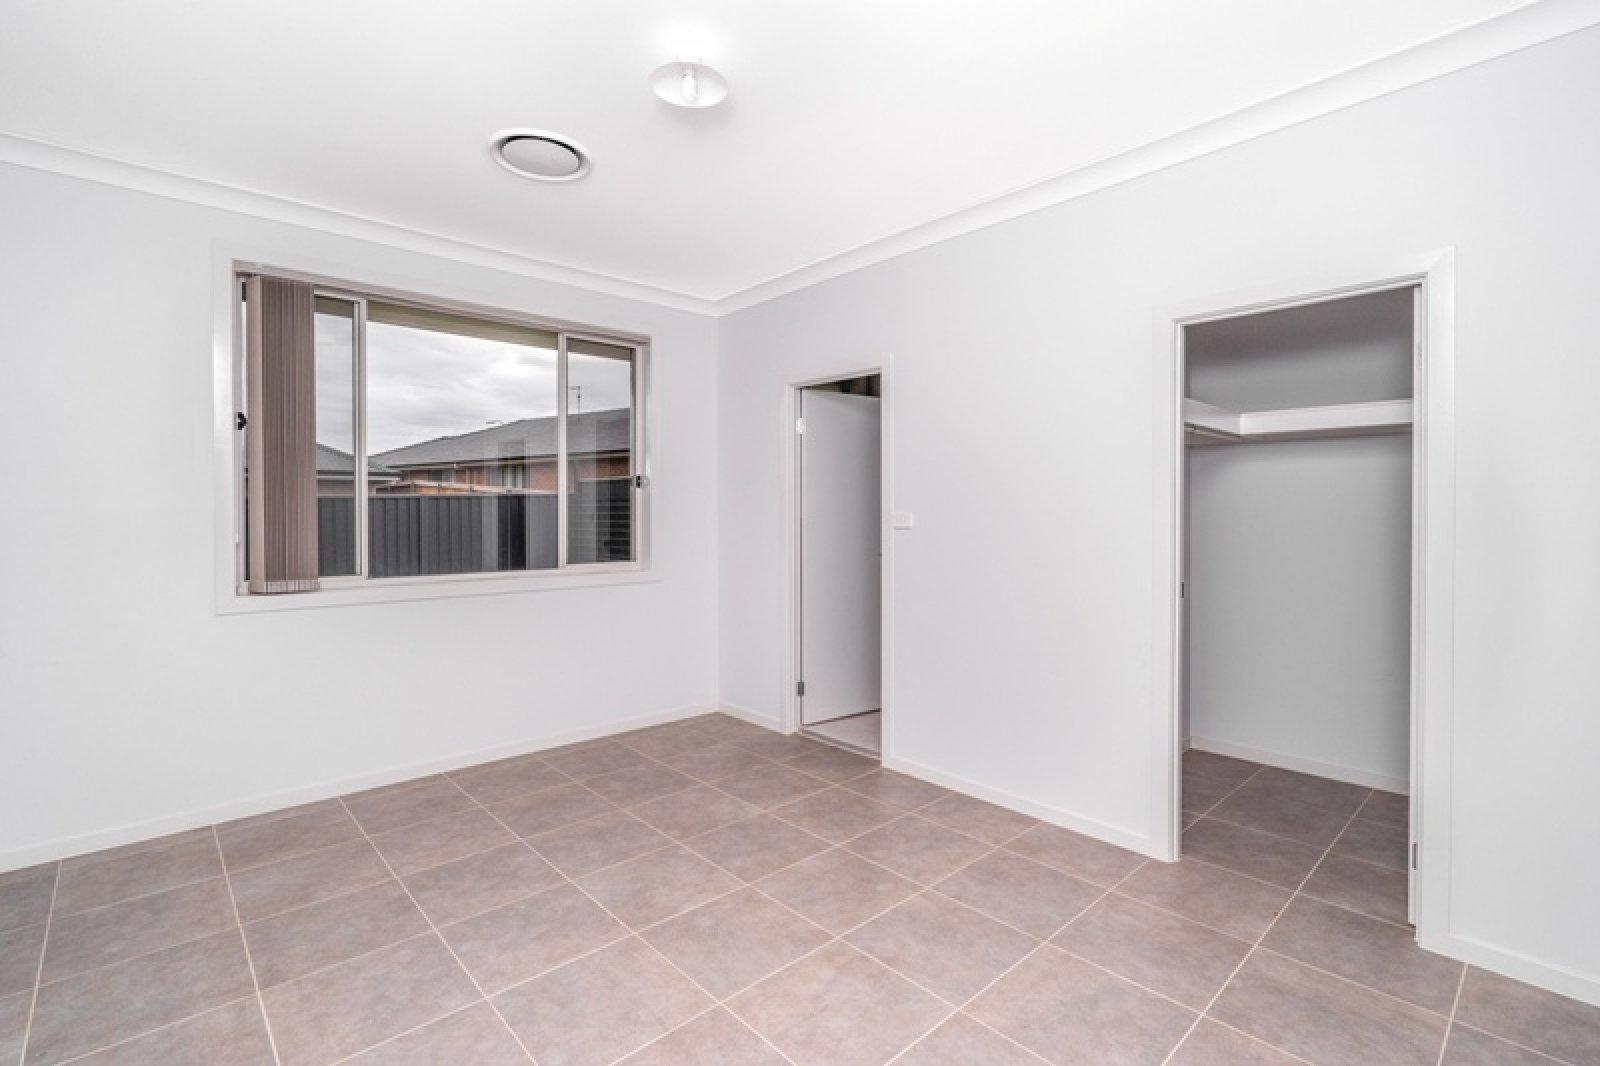 17a Irvine Street,Elderslie,NSW,4 Bedrooms Bedrooms,2 BathroomsBathrooms,House,Irvine Street,1457